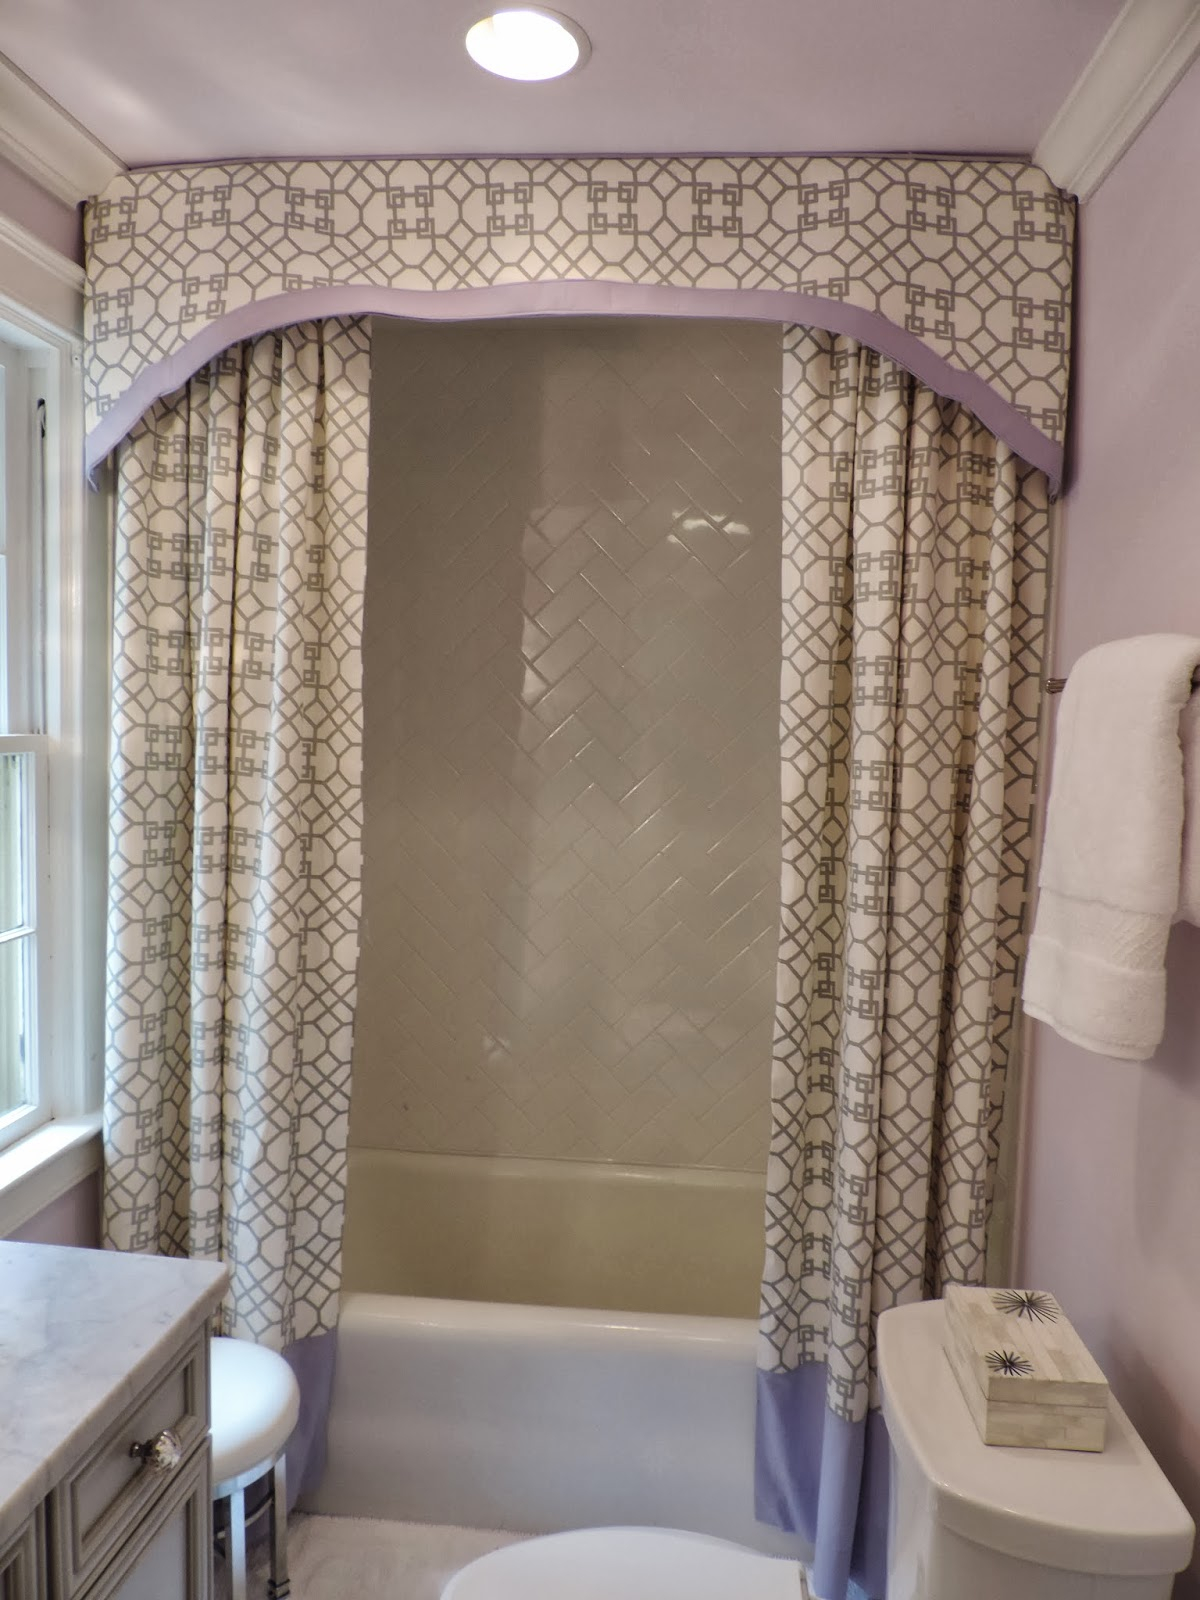 Amazing Shower Curtains With Valance Ideas Bathtub For Bathroom intended for proportions 1200 X 1600